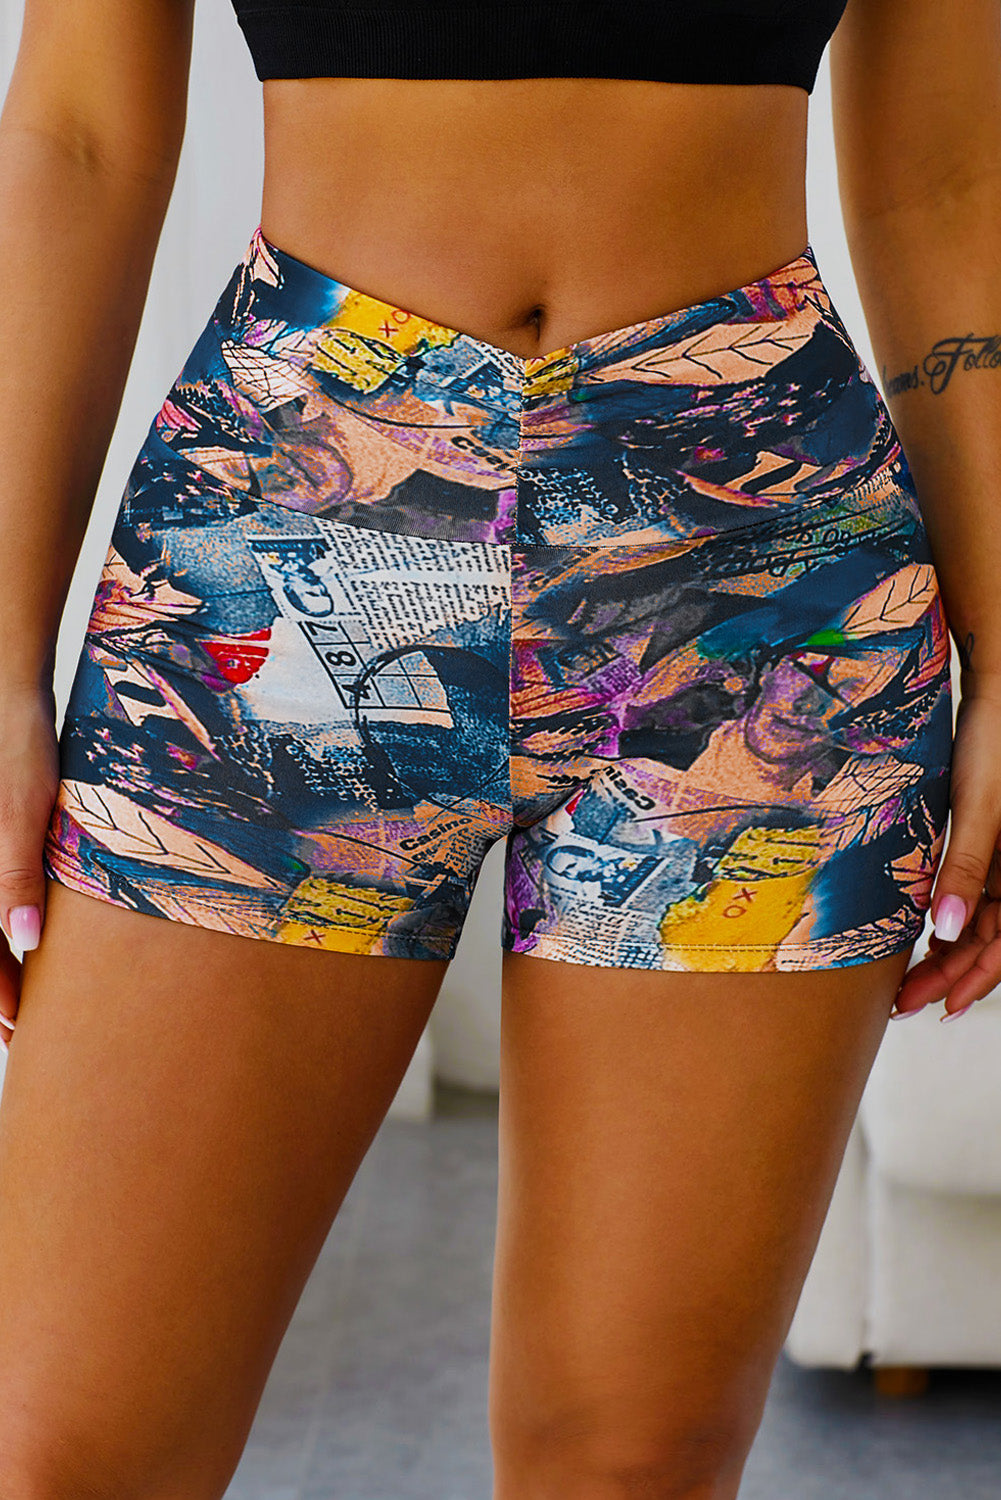 Black Printed High Waist Lift Up Yoga Shorts